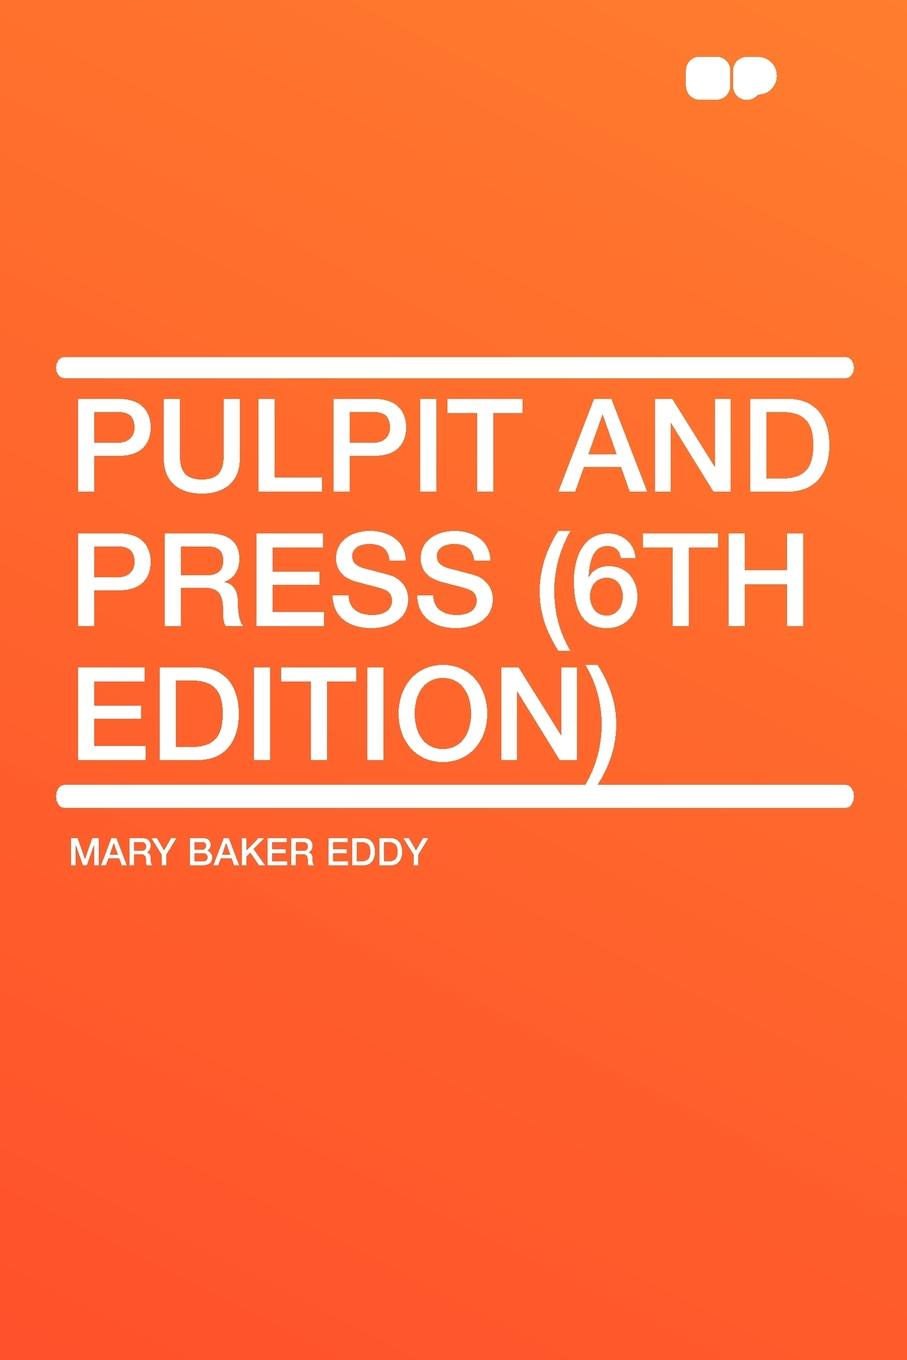 купить Mary Baker Eddy Pulpit and Press (6th Edition) дешево